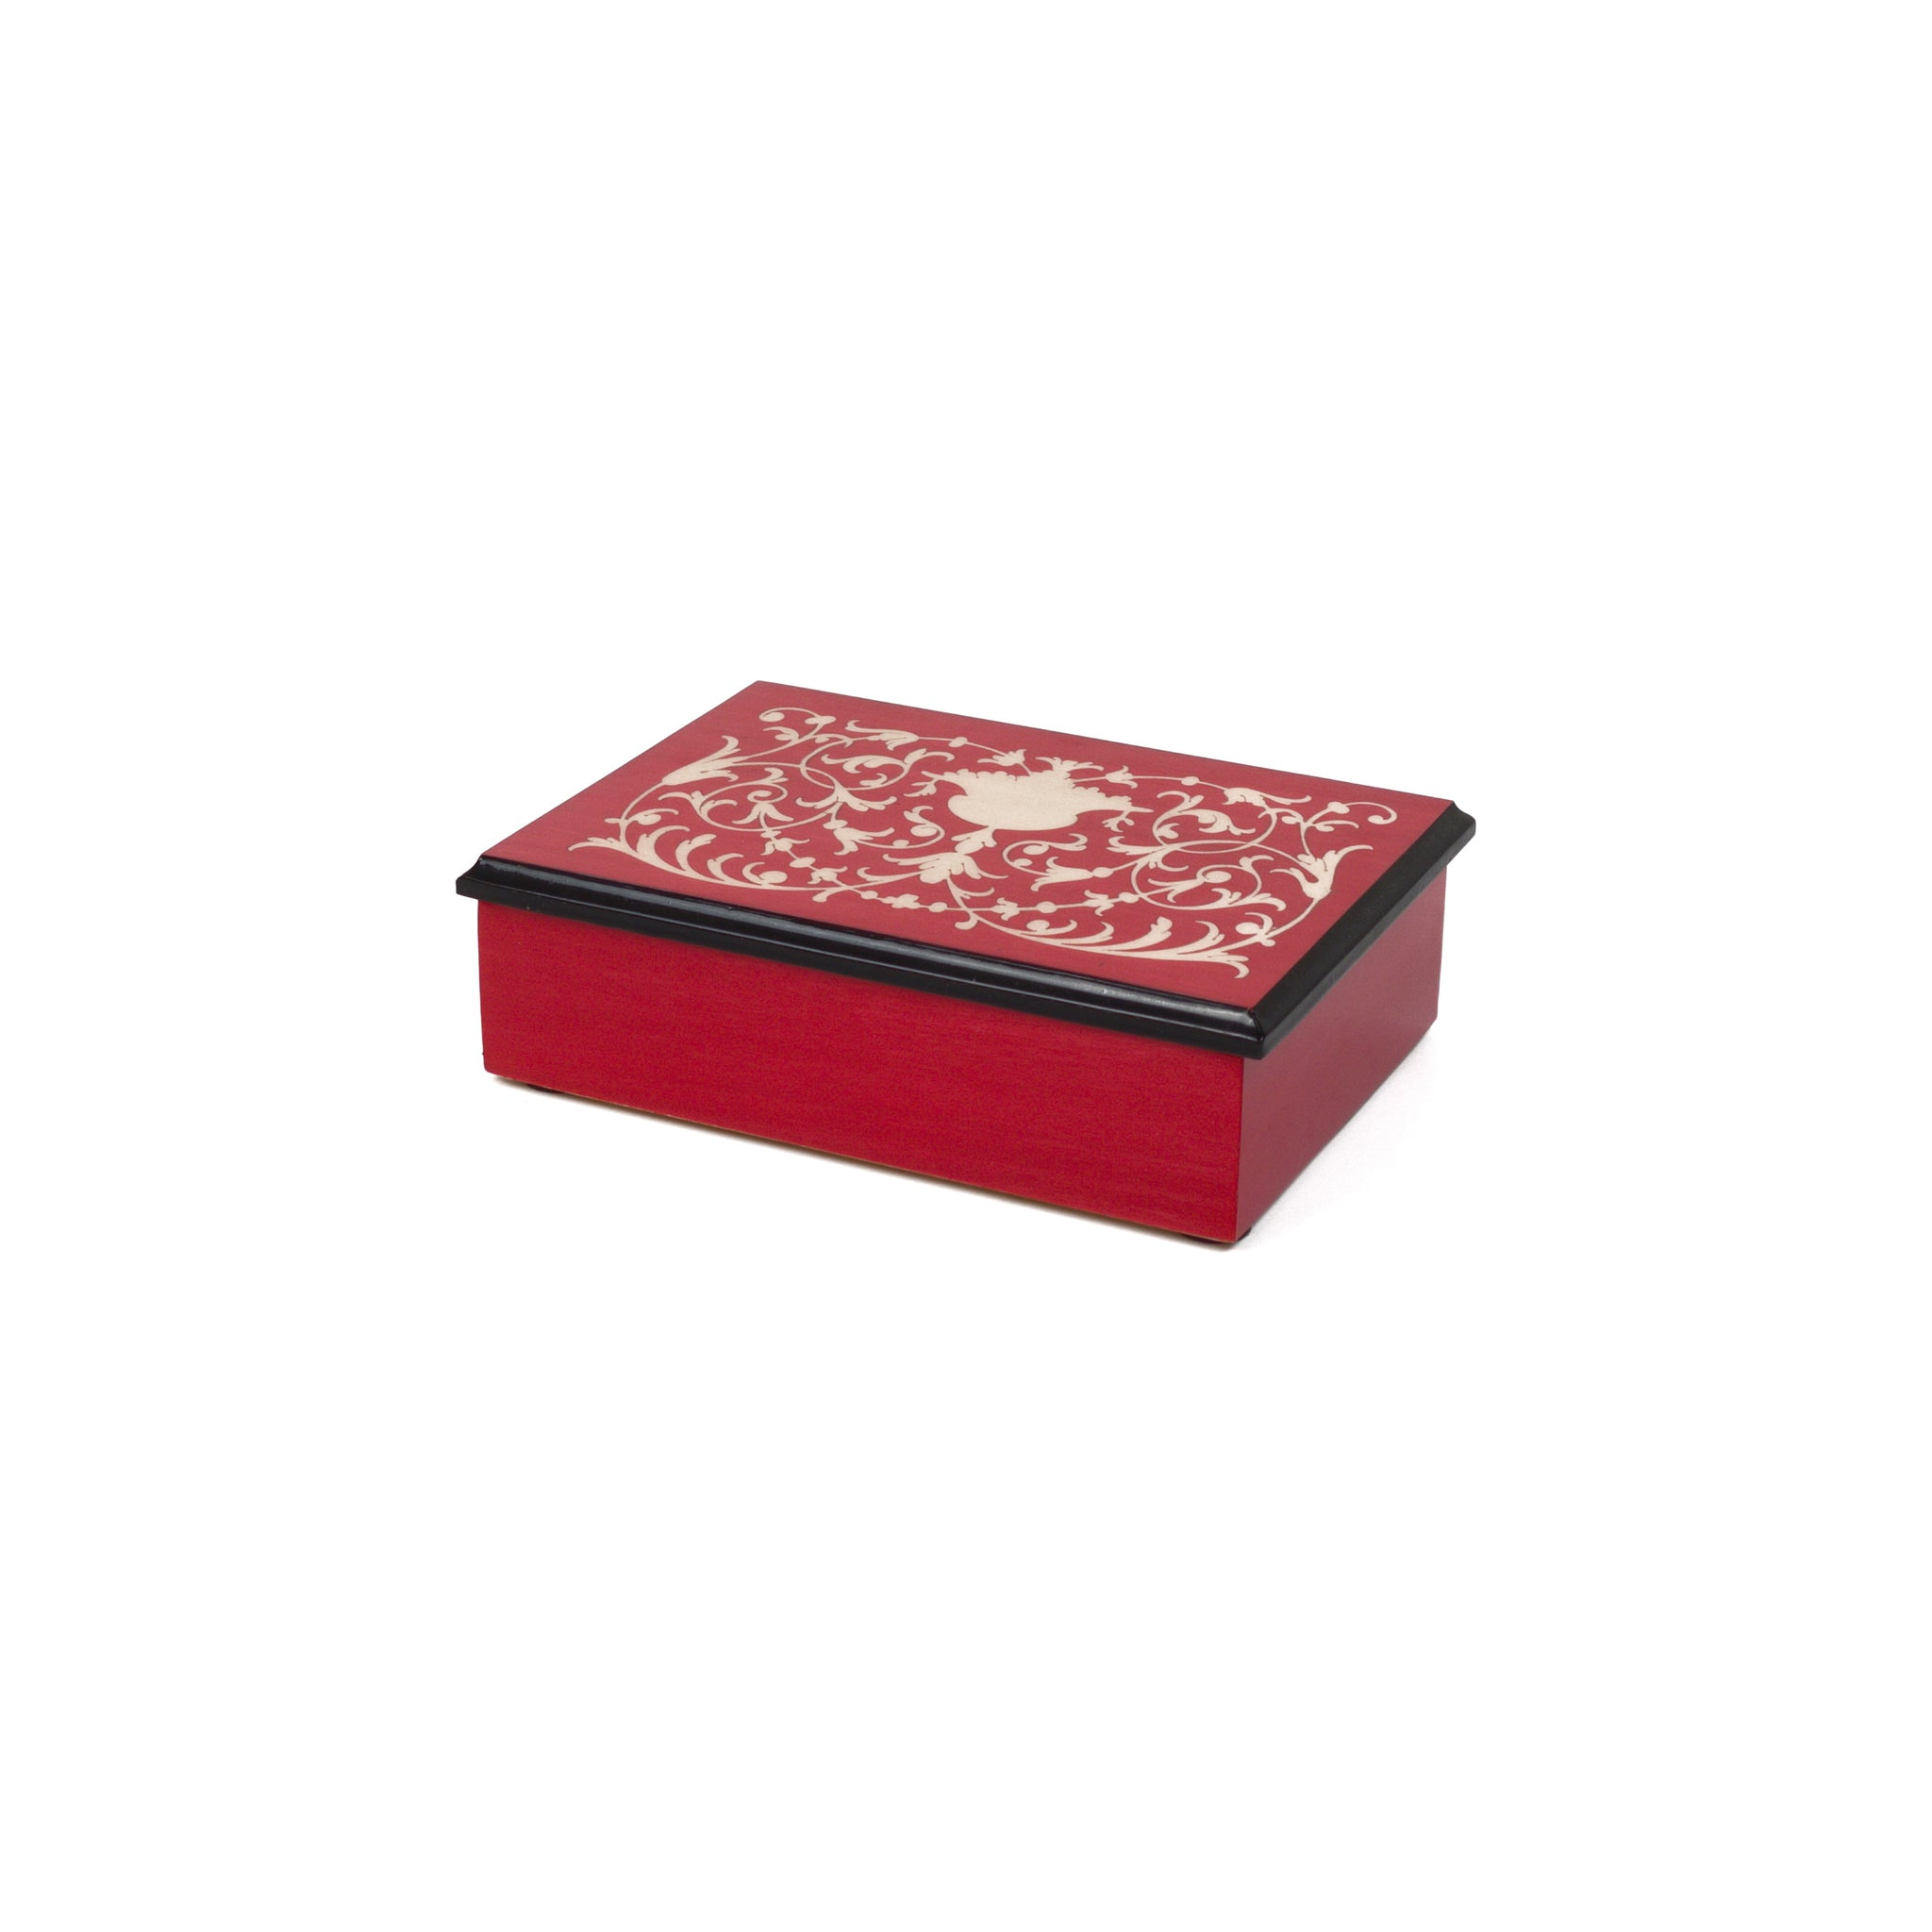 Ornamental red Rectangle Box